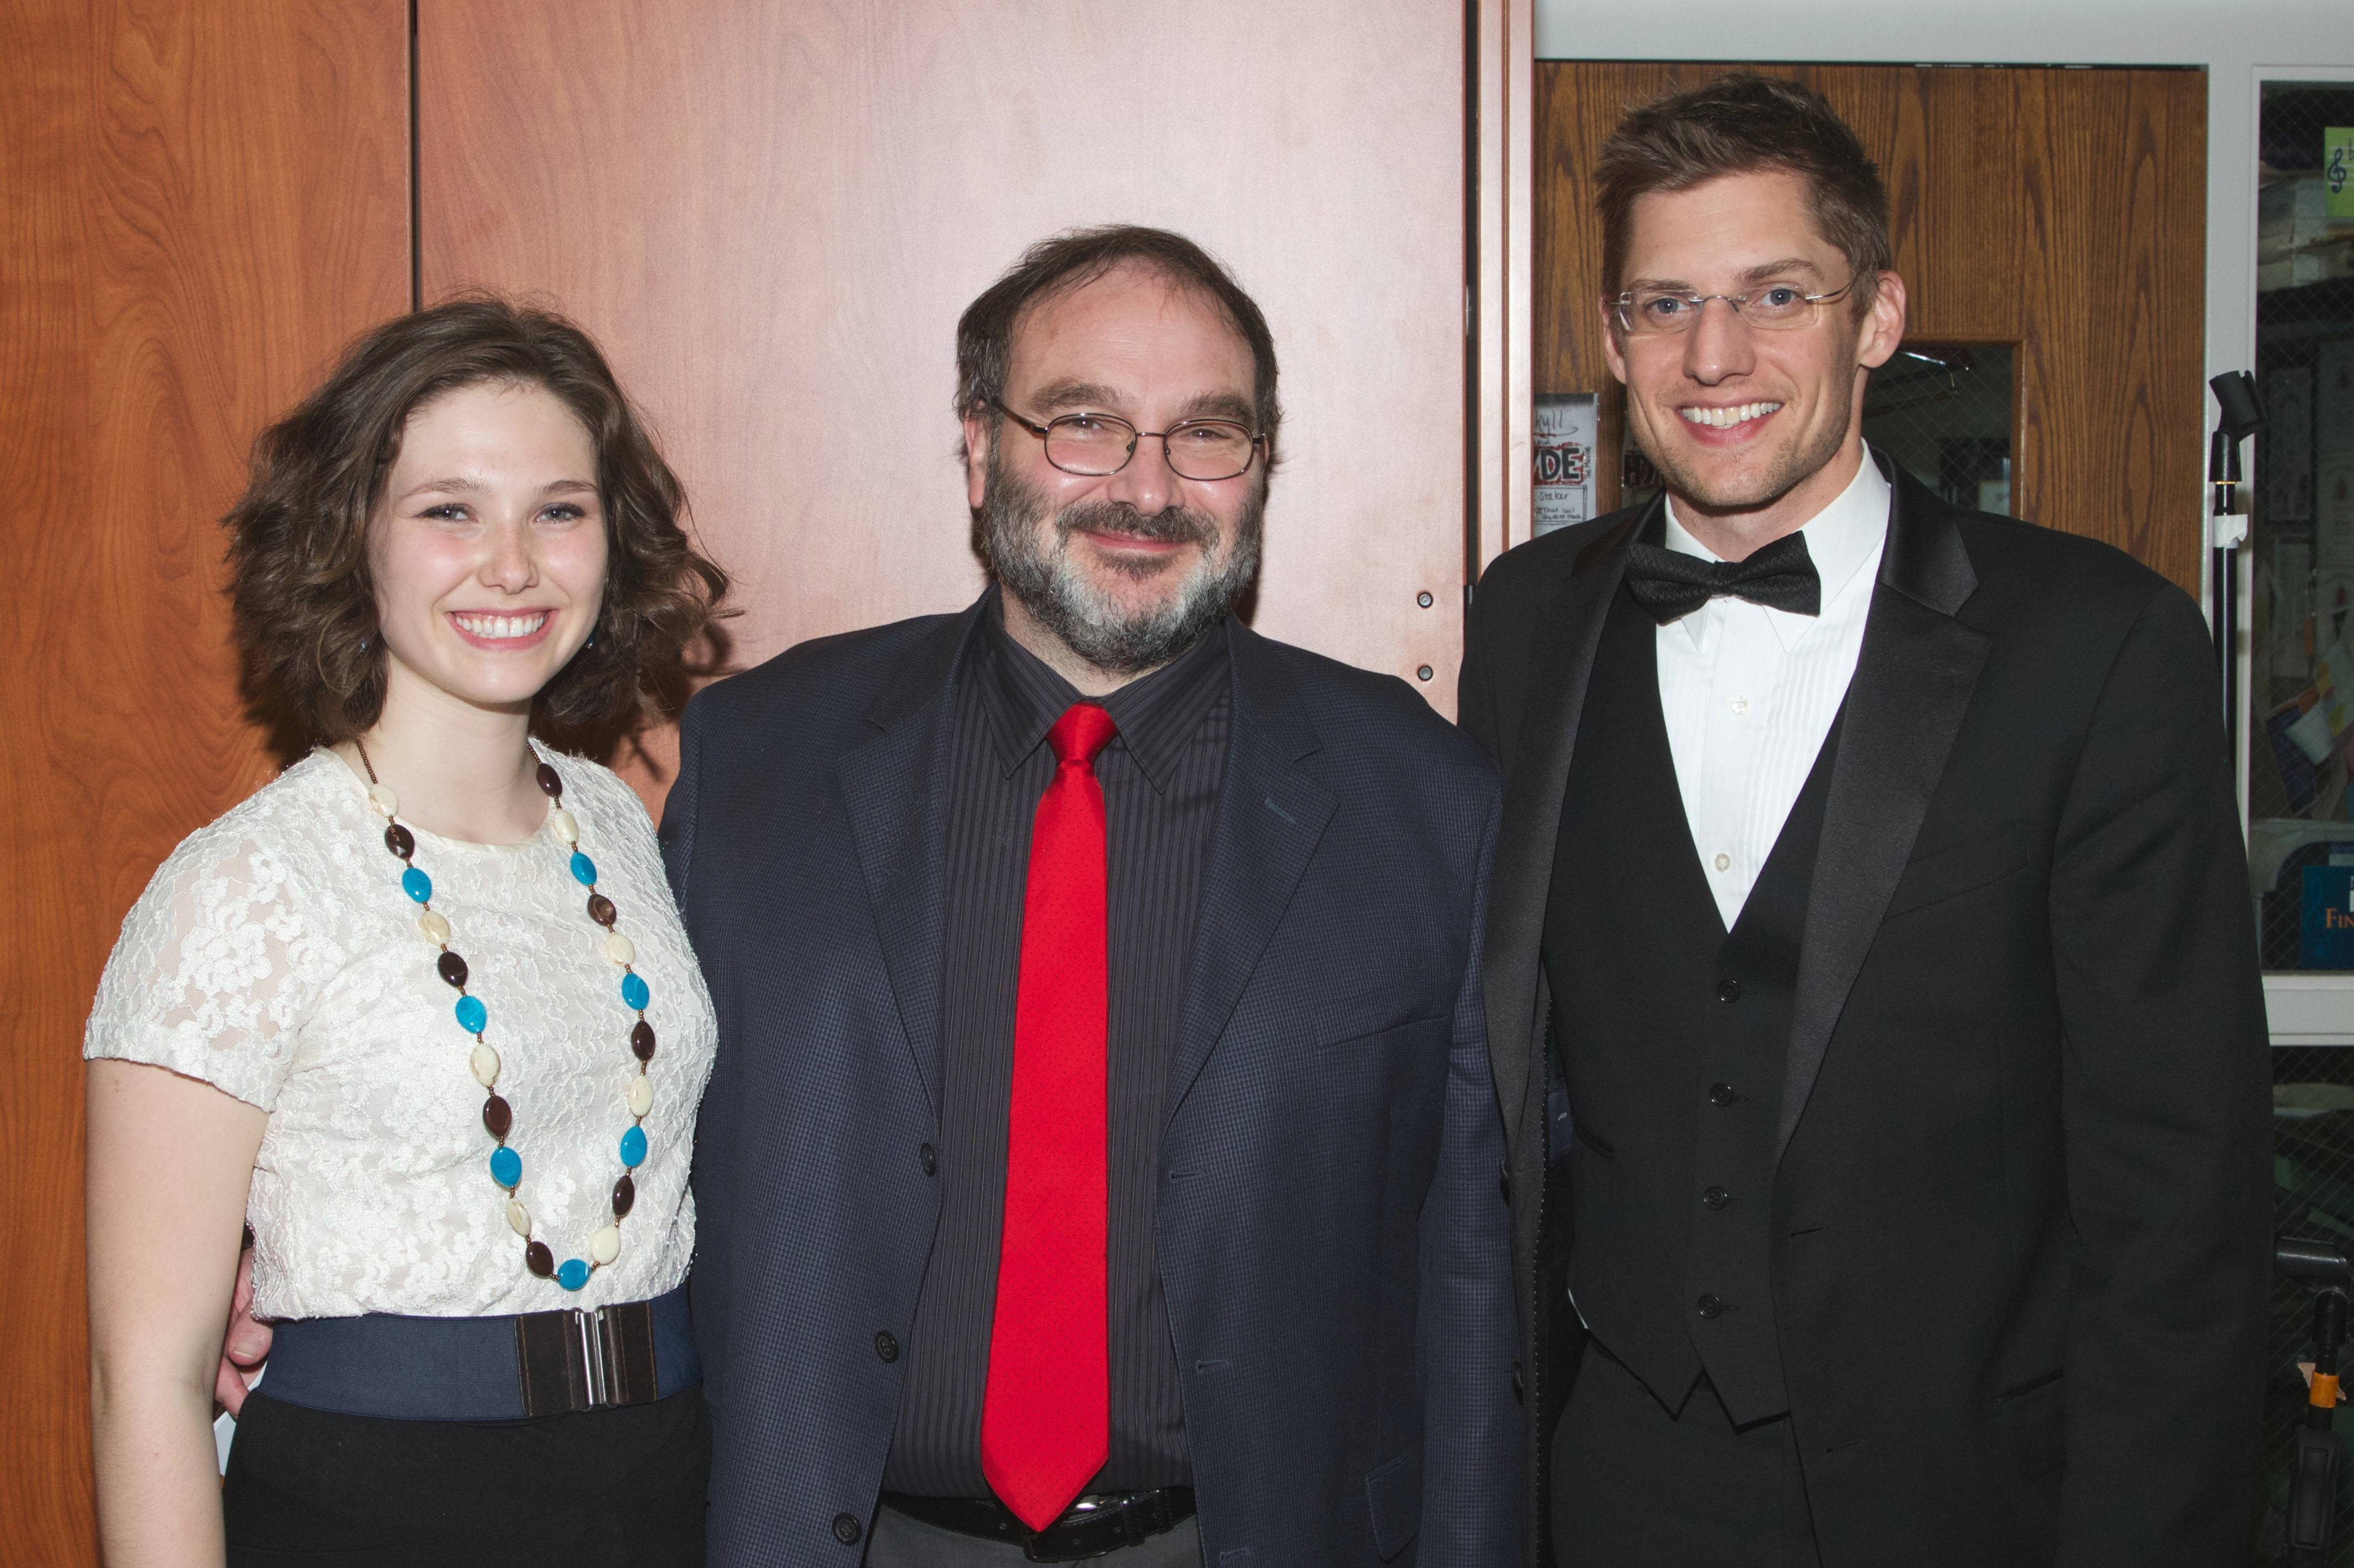 Naperville North High School student Taylor Kroma smiles with her father, Jeff Kroma, and orchestra teacher, Dana Green, after the Healing Hearts with Harmony benefit concert she hosted in May for Edward Hospital. The concert raised nearly $2,000 for the Edward Foundation.